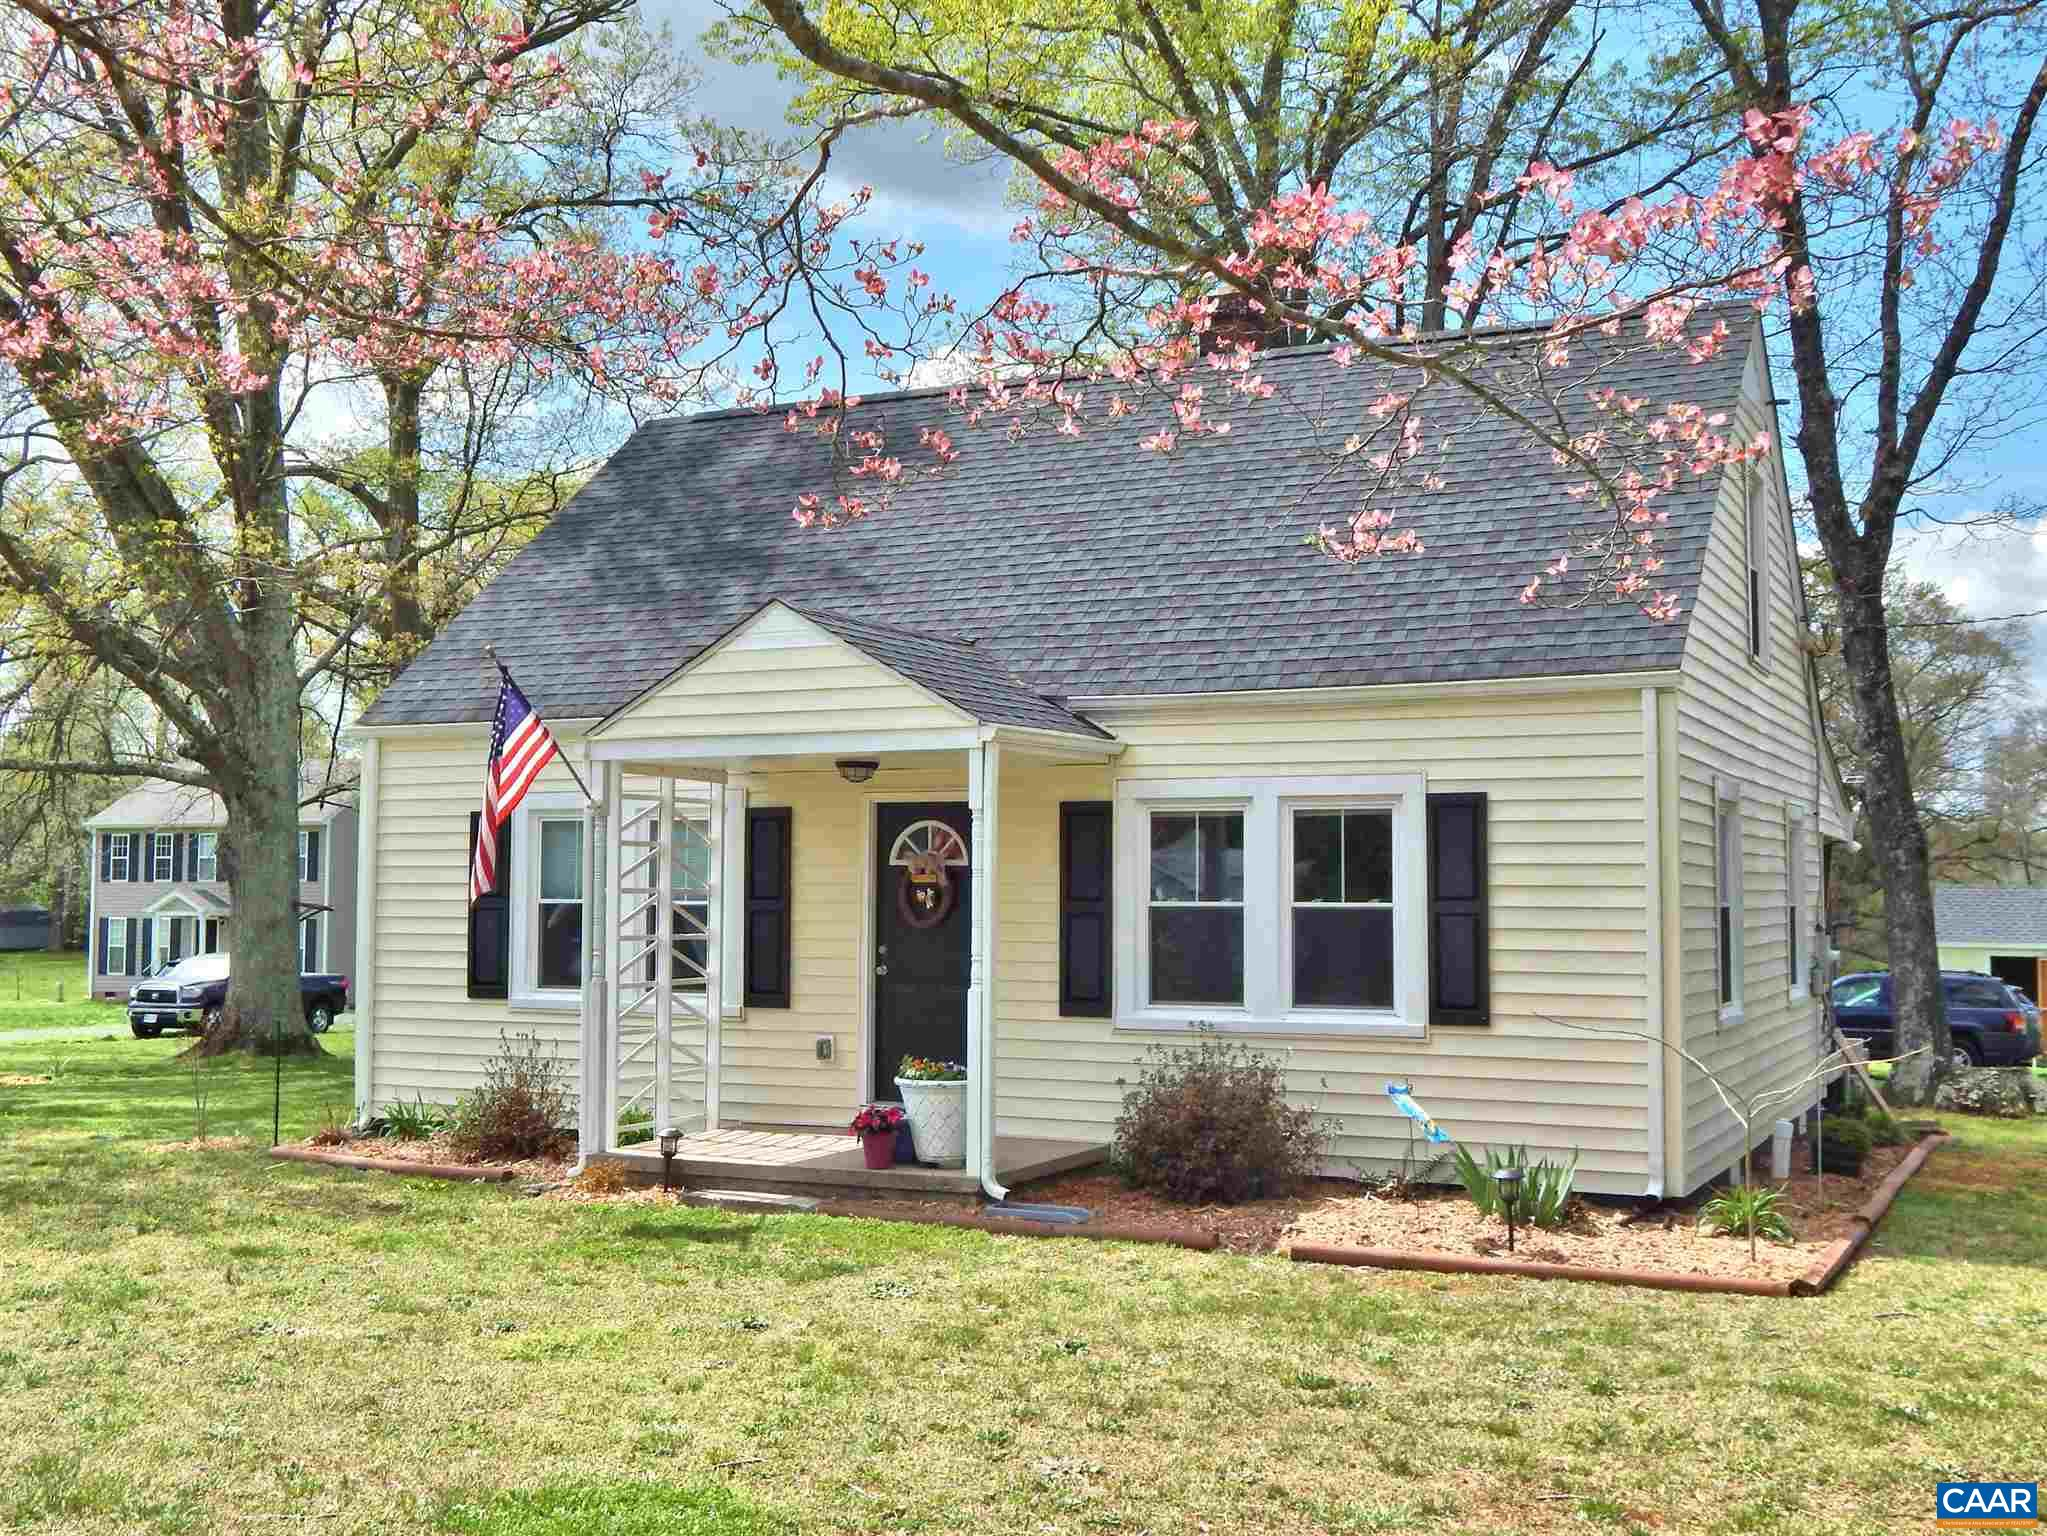 481 Old Louisa Rd, Gordonsville